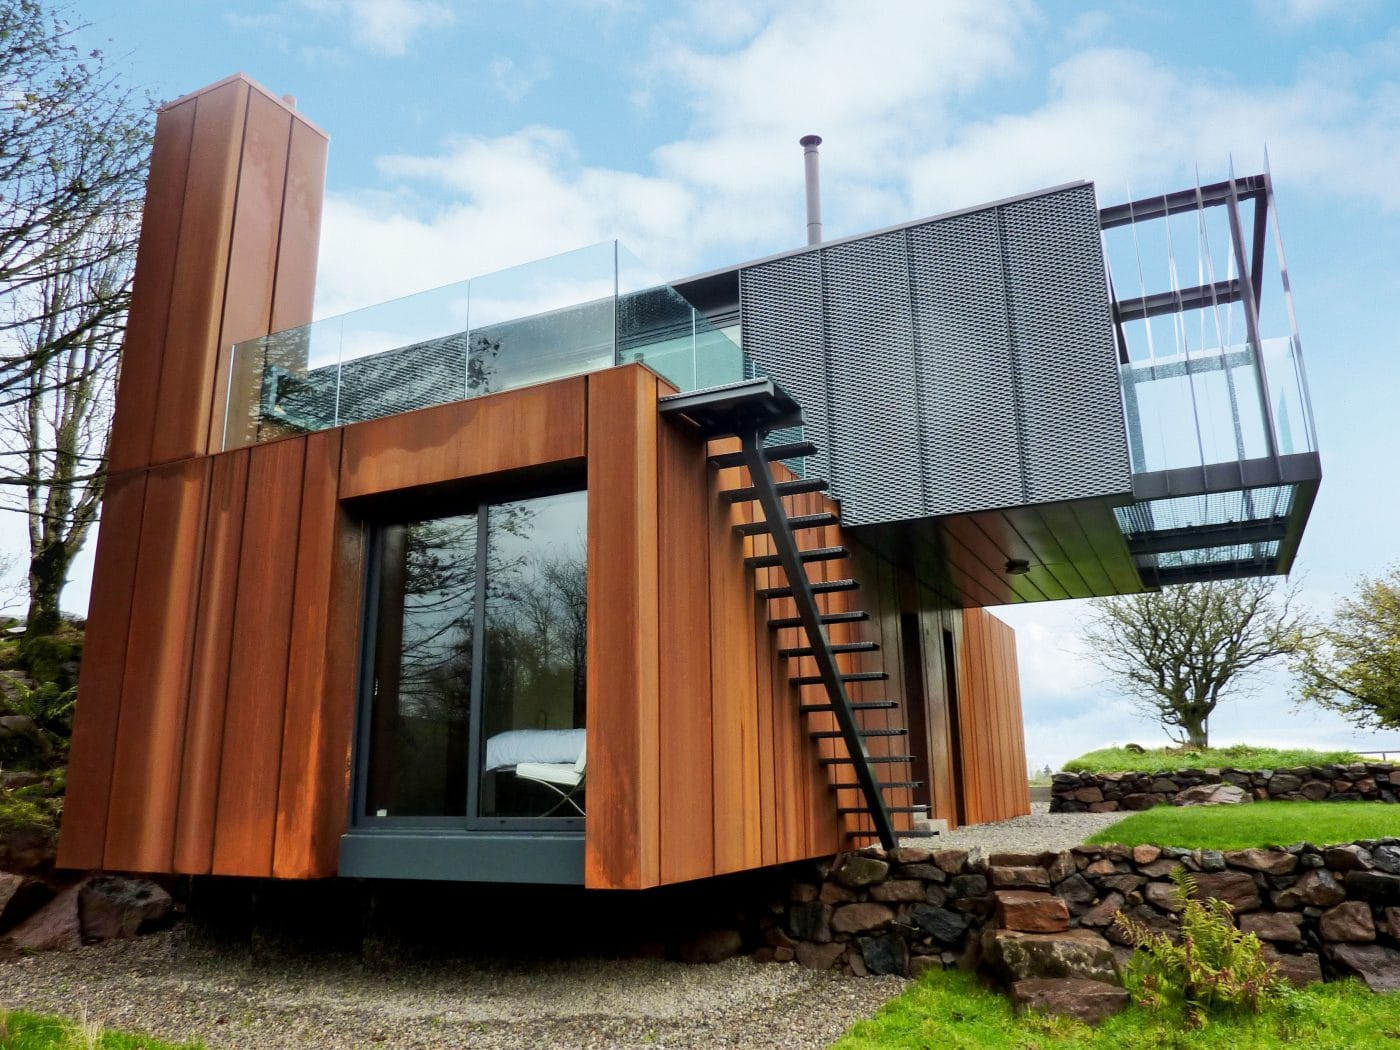 Grand Designs - Shipping Container Home by Patrick Bradley | Metal ...